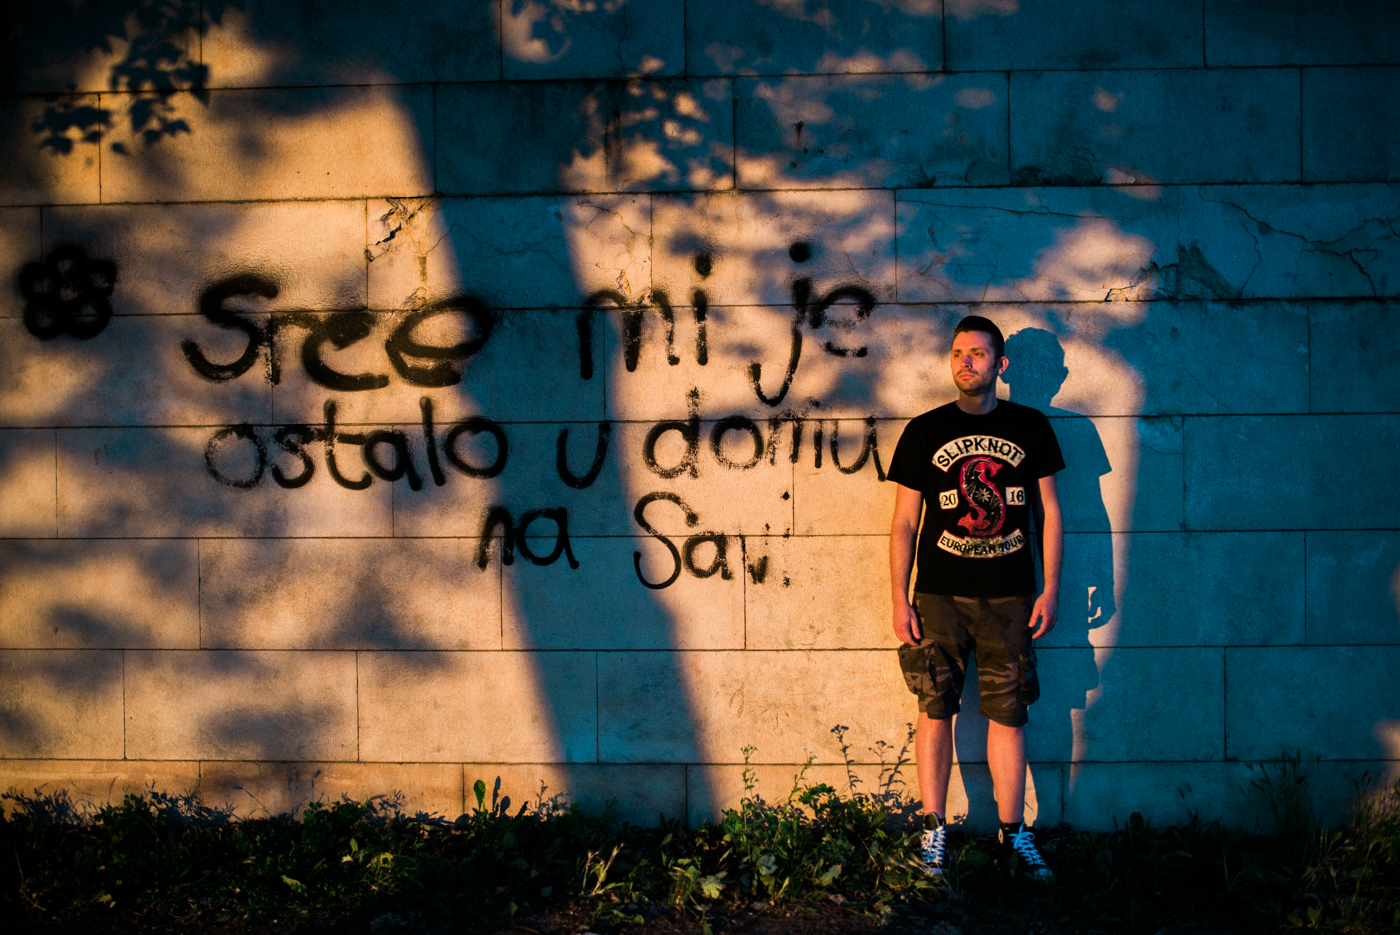 I left my heart in a stundet home in Sava graffitte with a groom posing next to it